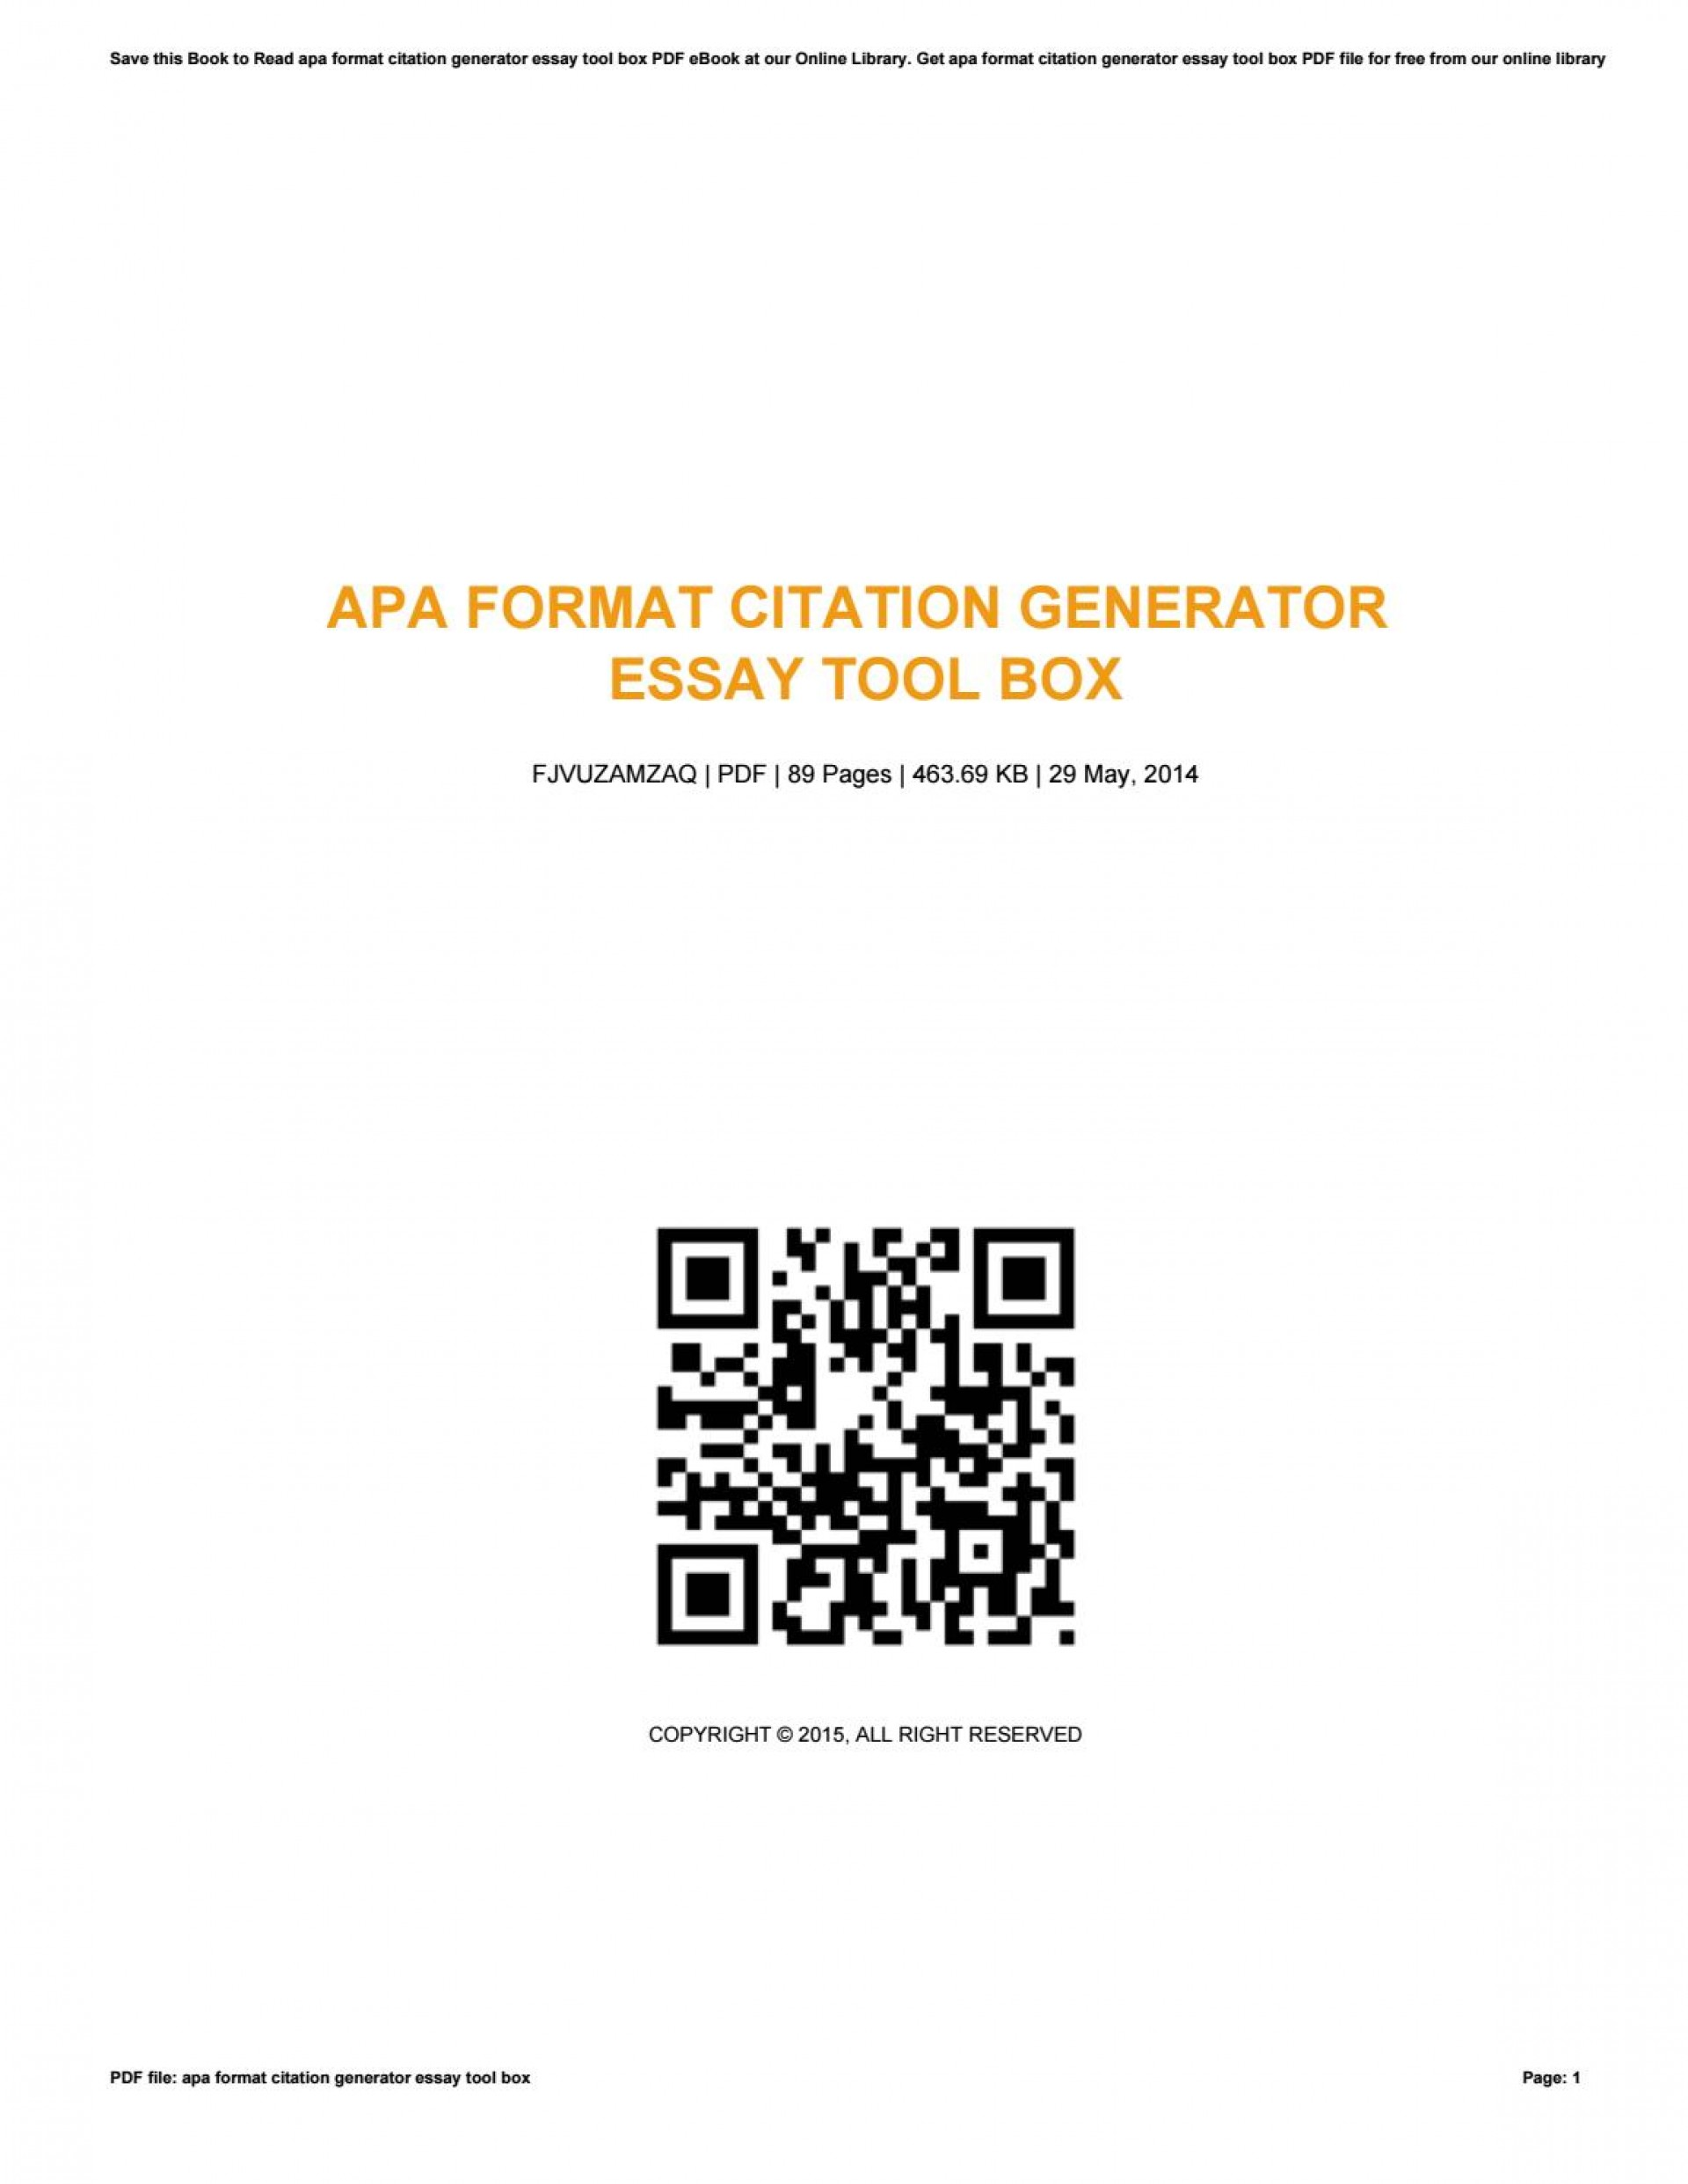 014 Apa Research Paper Citation Generator Page 1 Surprising Format 1920